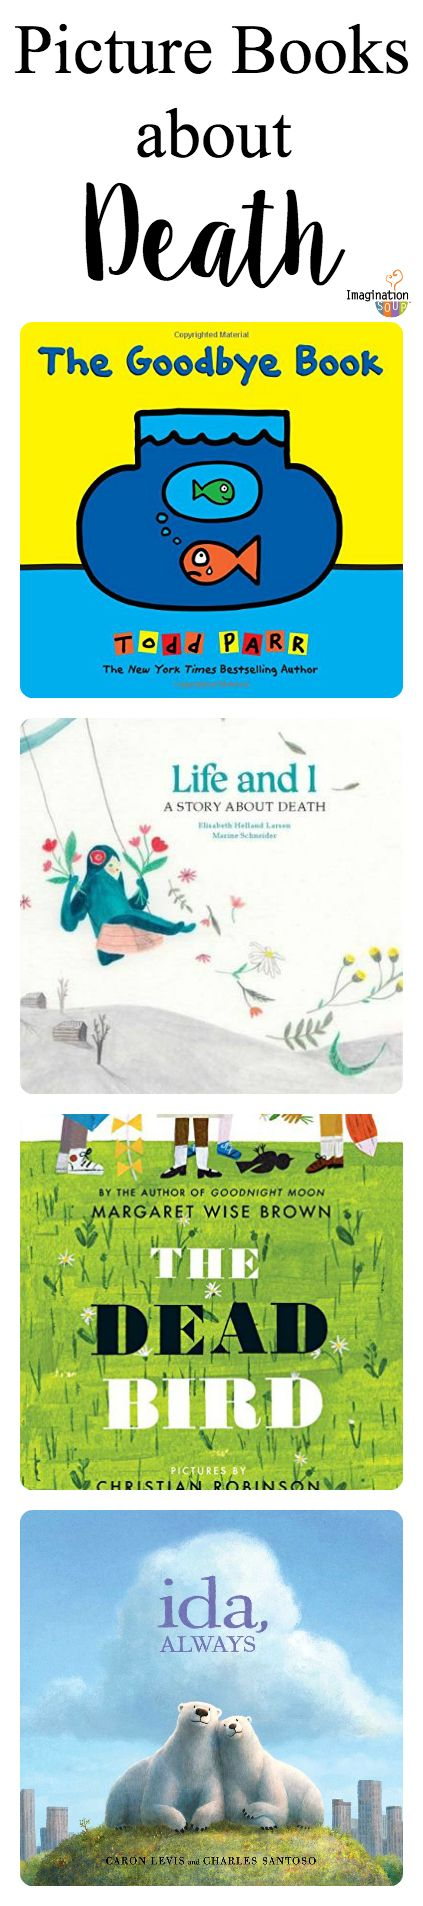 recommended picture books for kids about death and dying